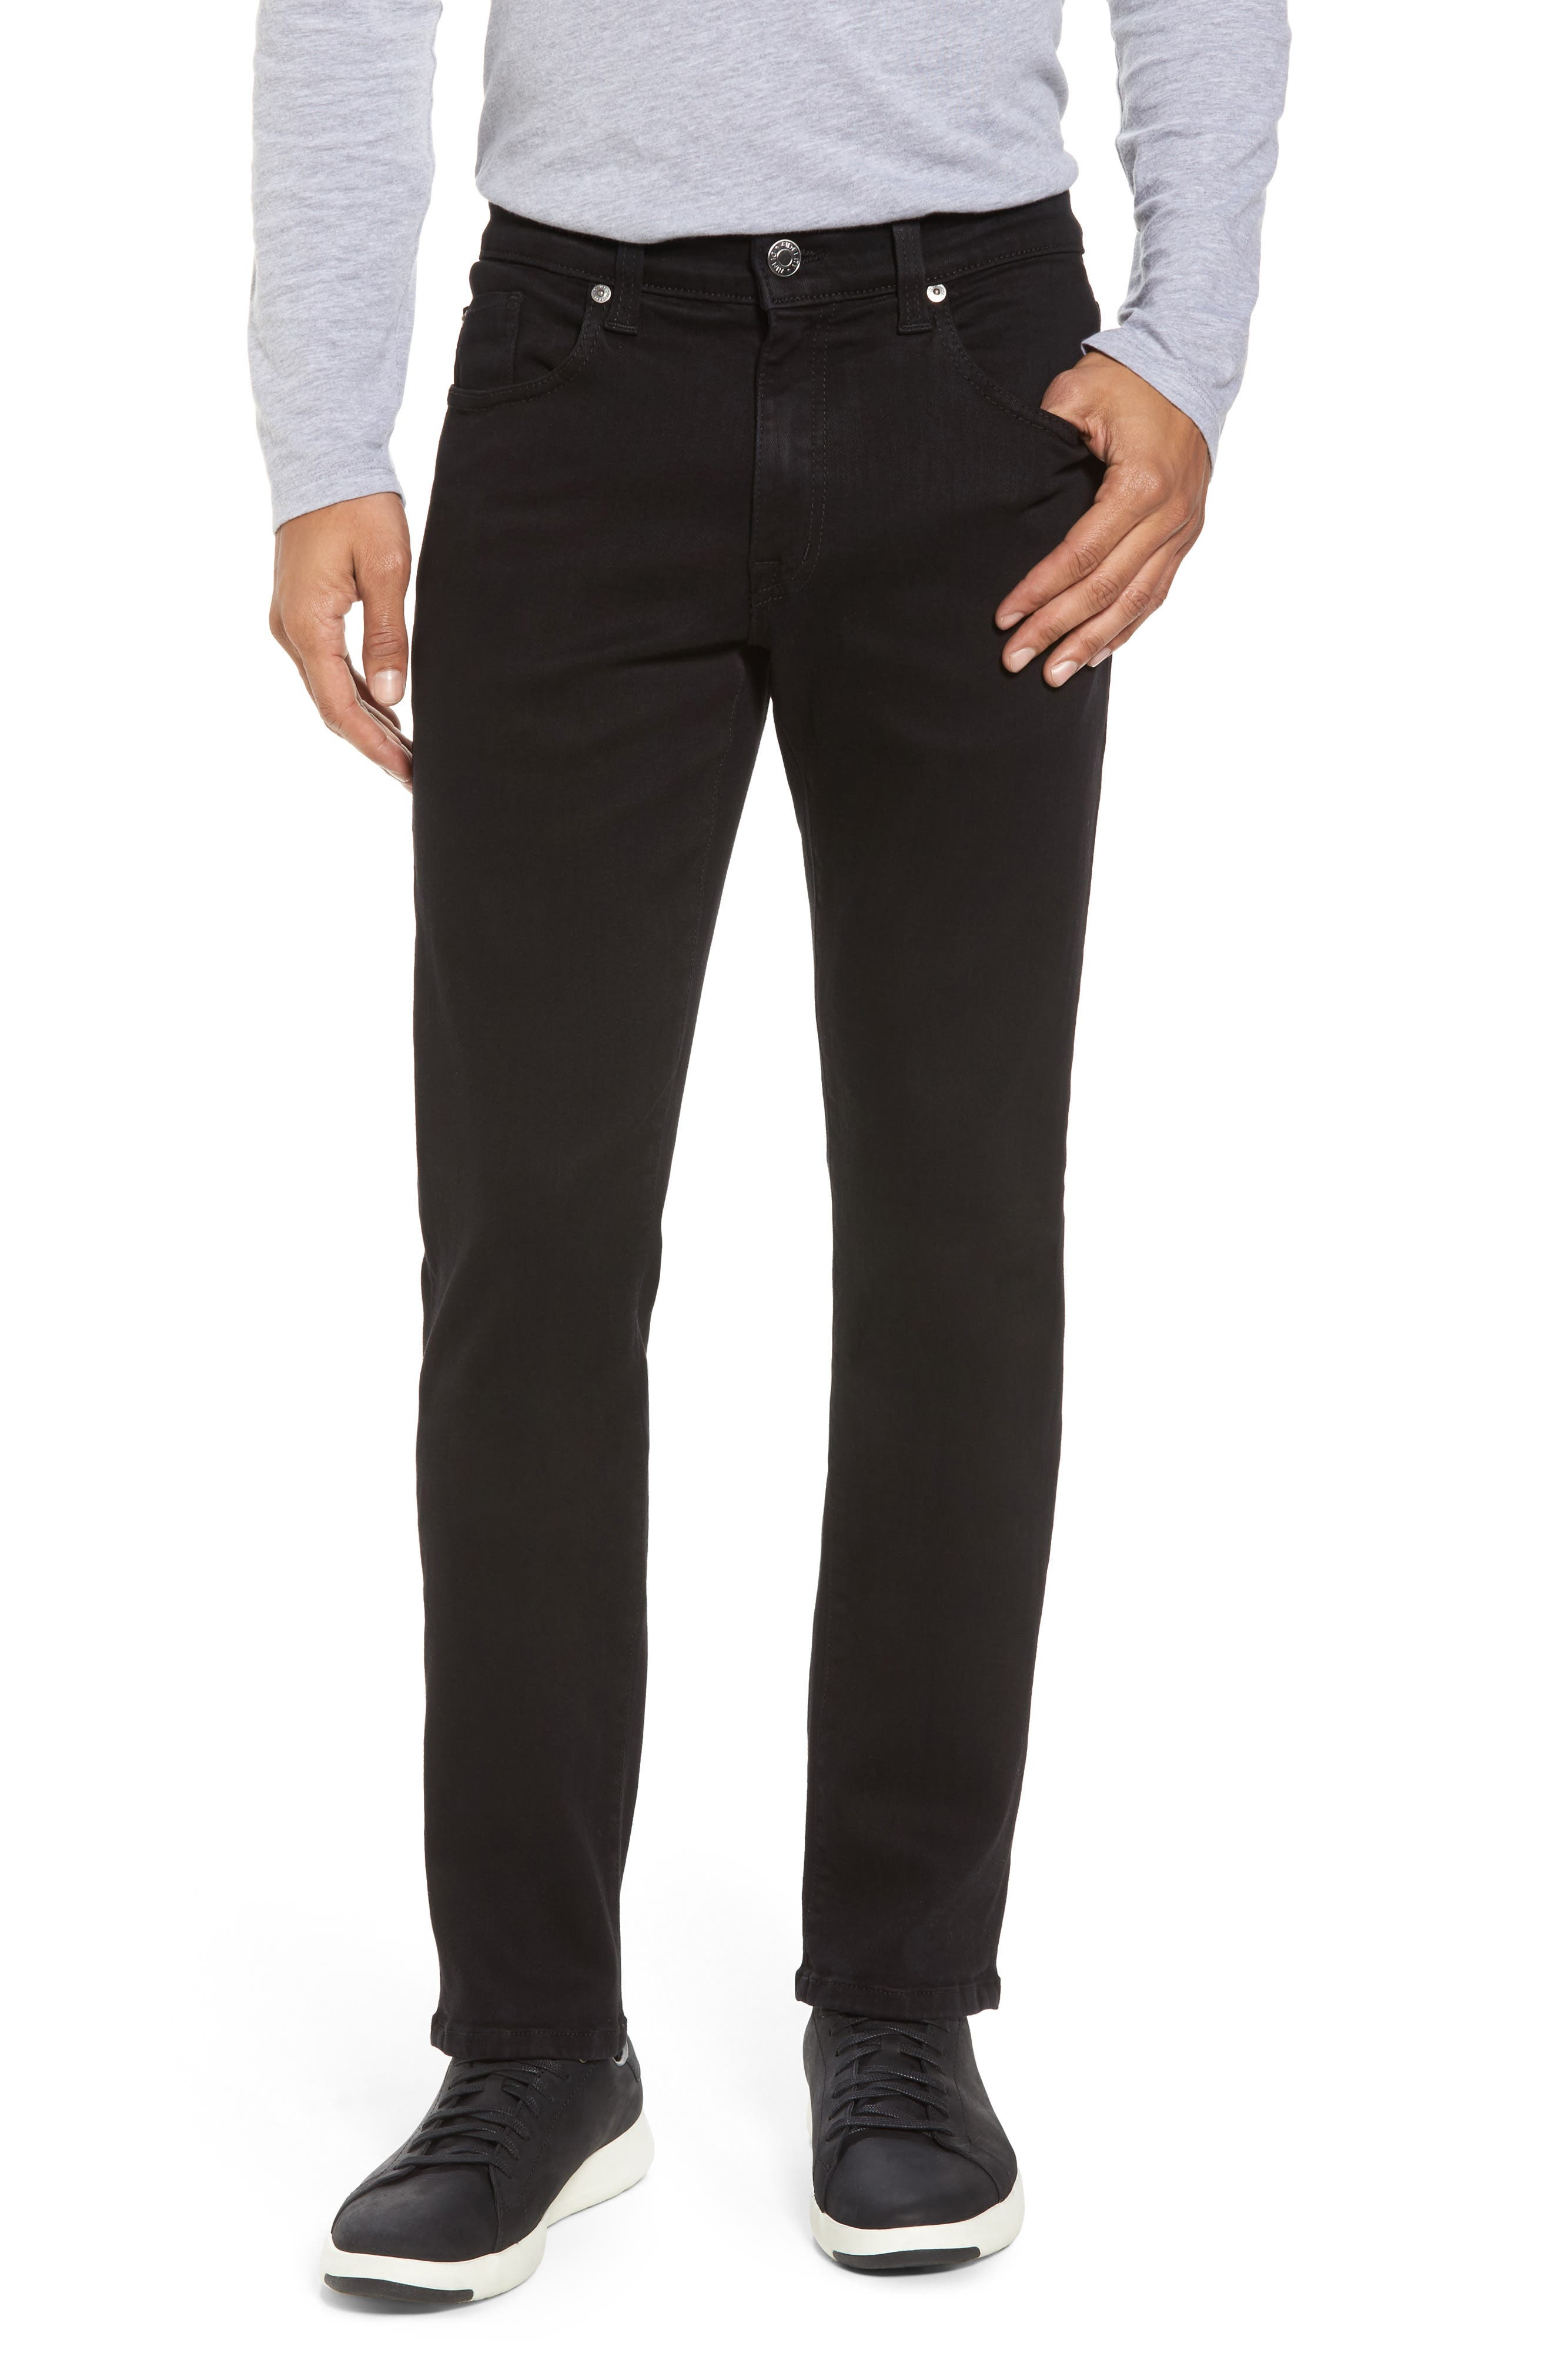 Torino Slim Fit Jeans,                         Main,                         color, Everblack